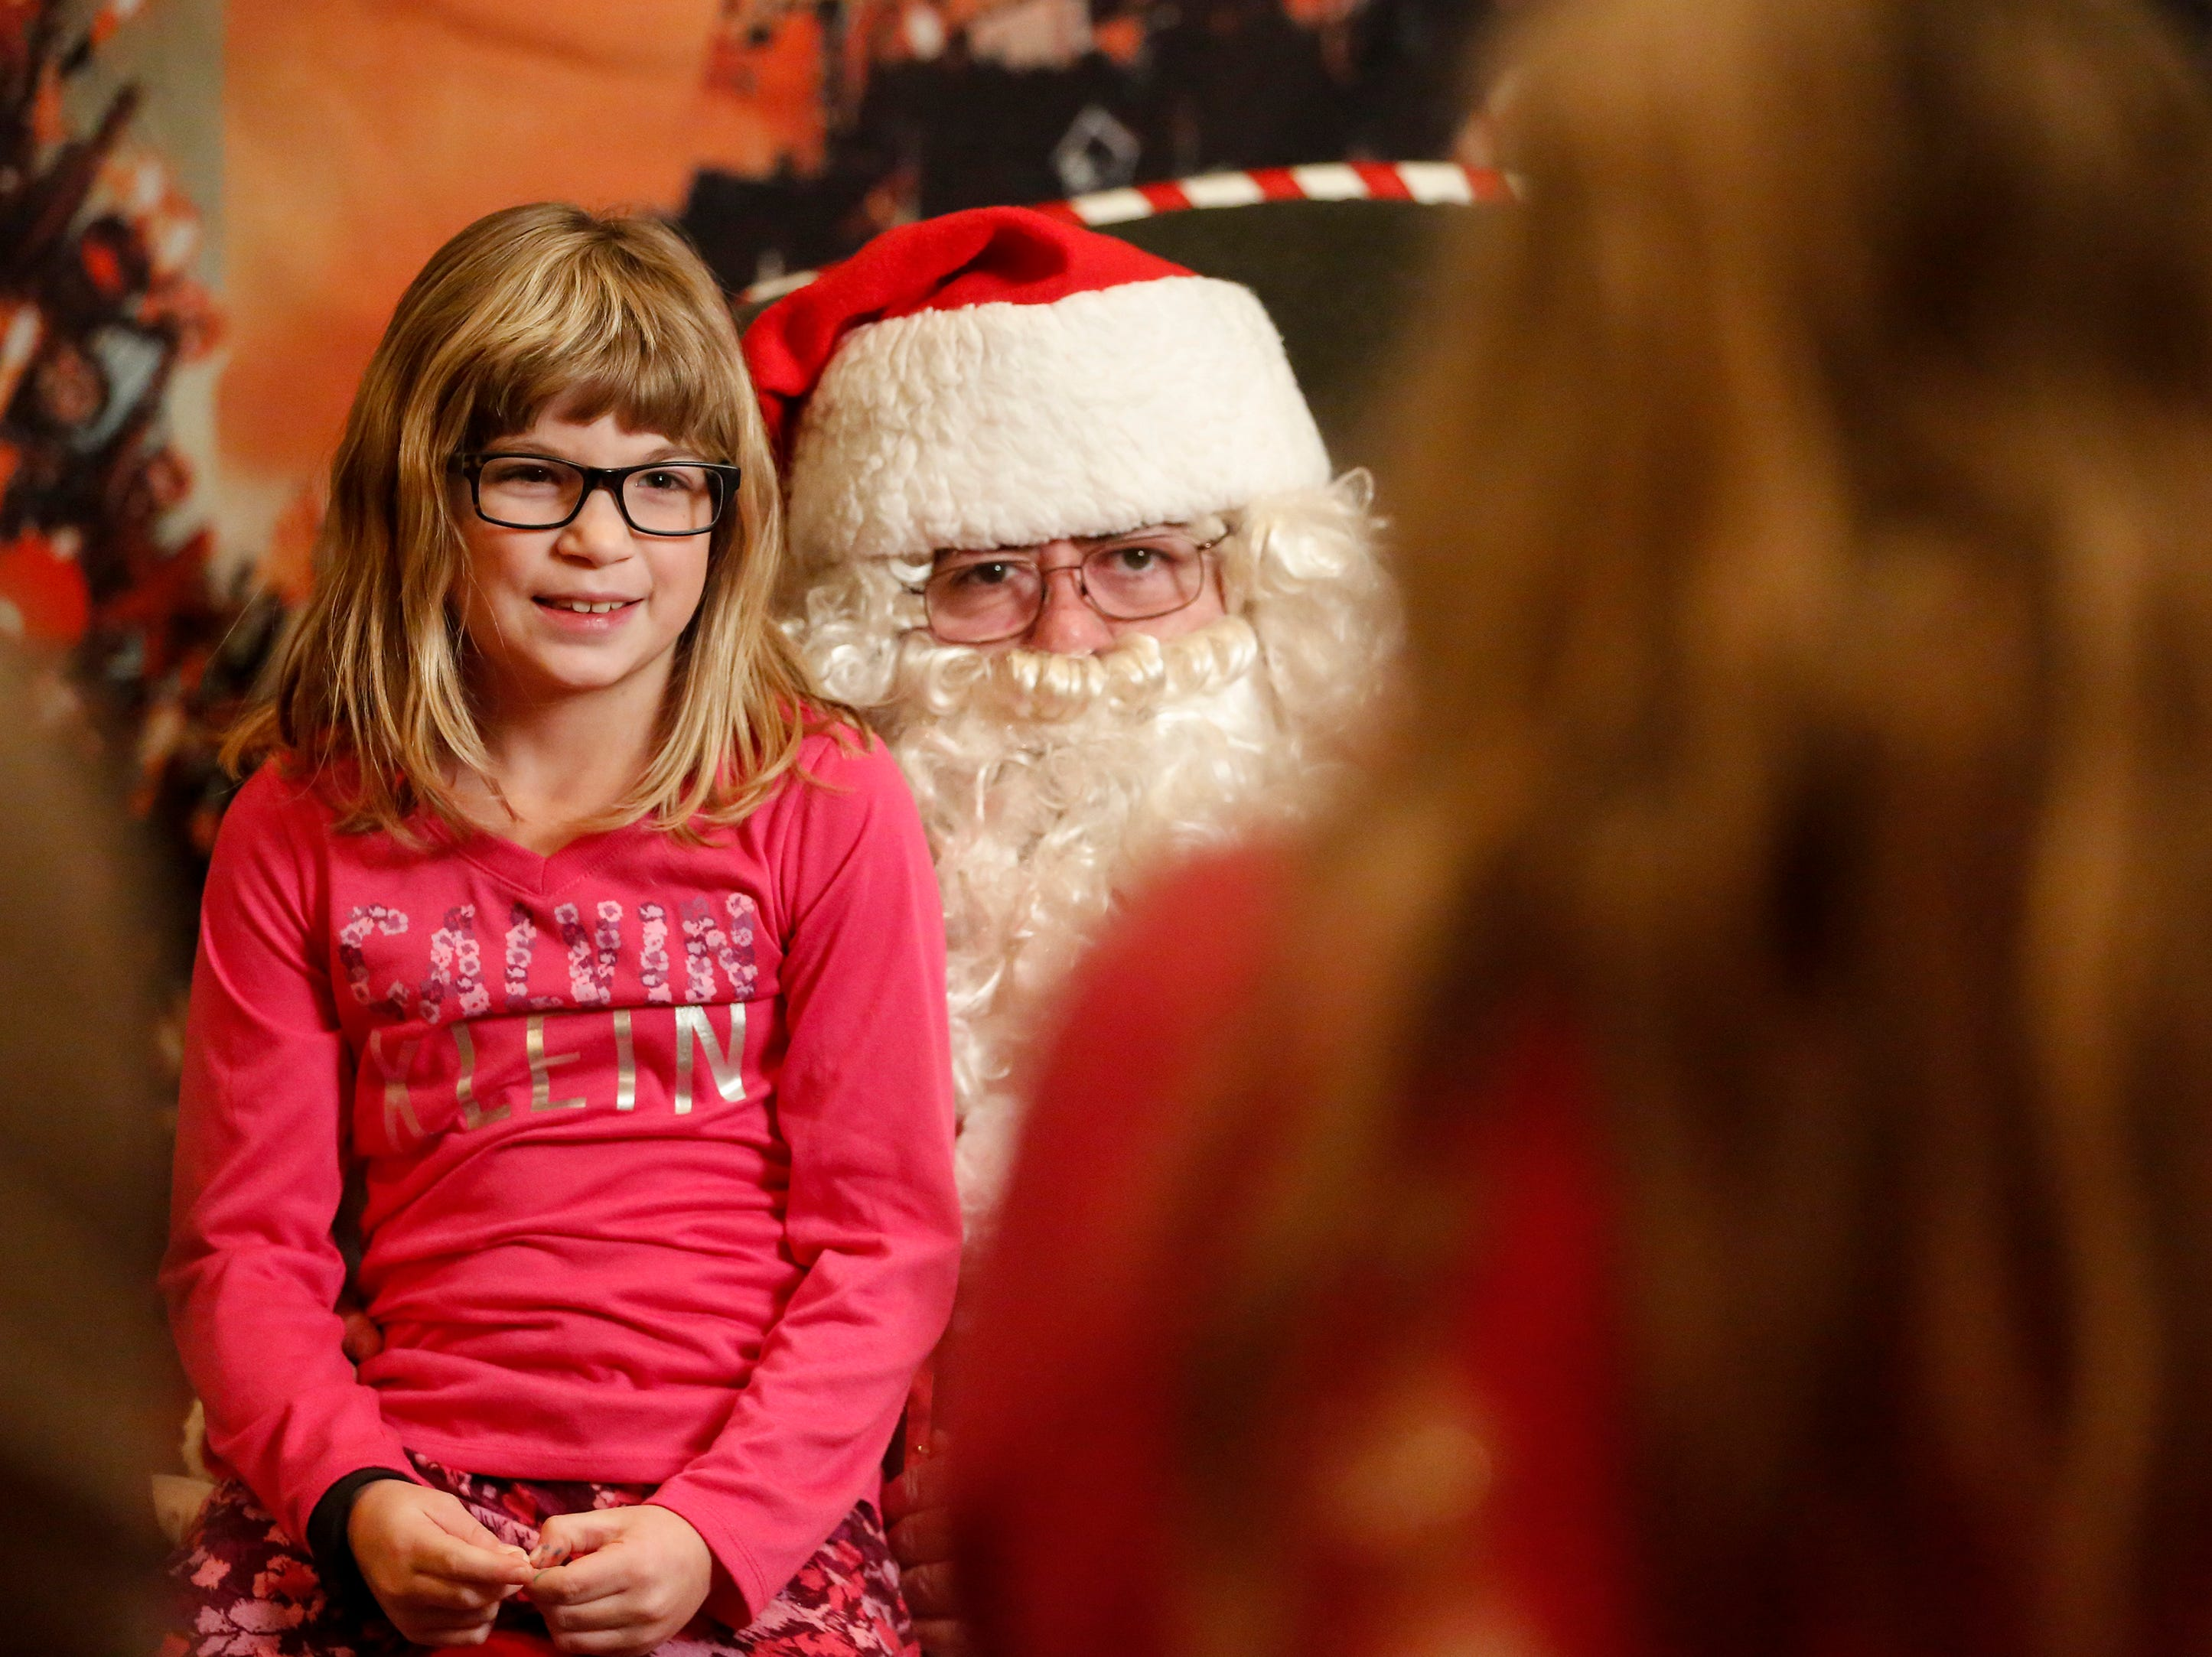 A child poses on Santa's lap for a photo at Santa's North Pole at the Holiday Inn Saturday, December 8, 2018, in Manitowoc, Wis. Joshua Clark/USA TODAY NETWORK-Wisconsin